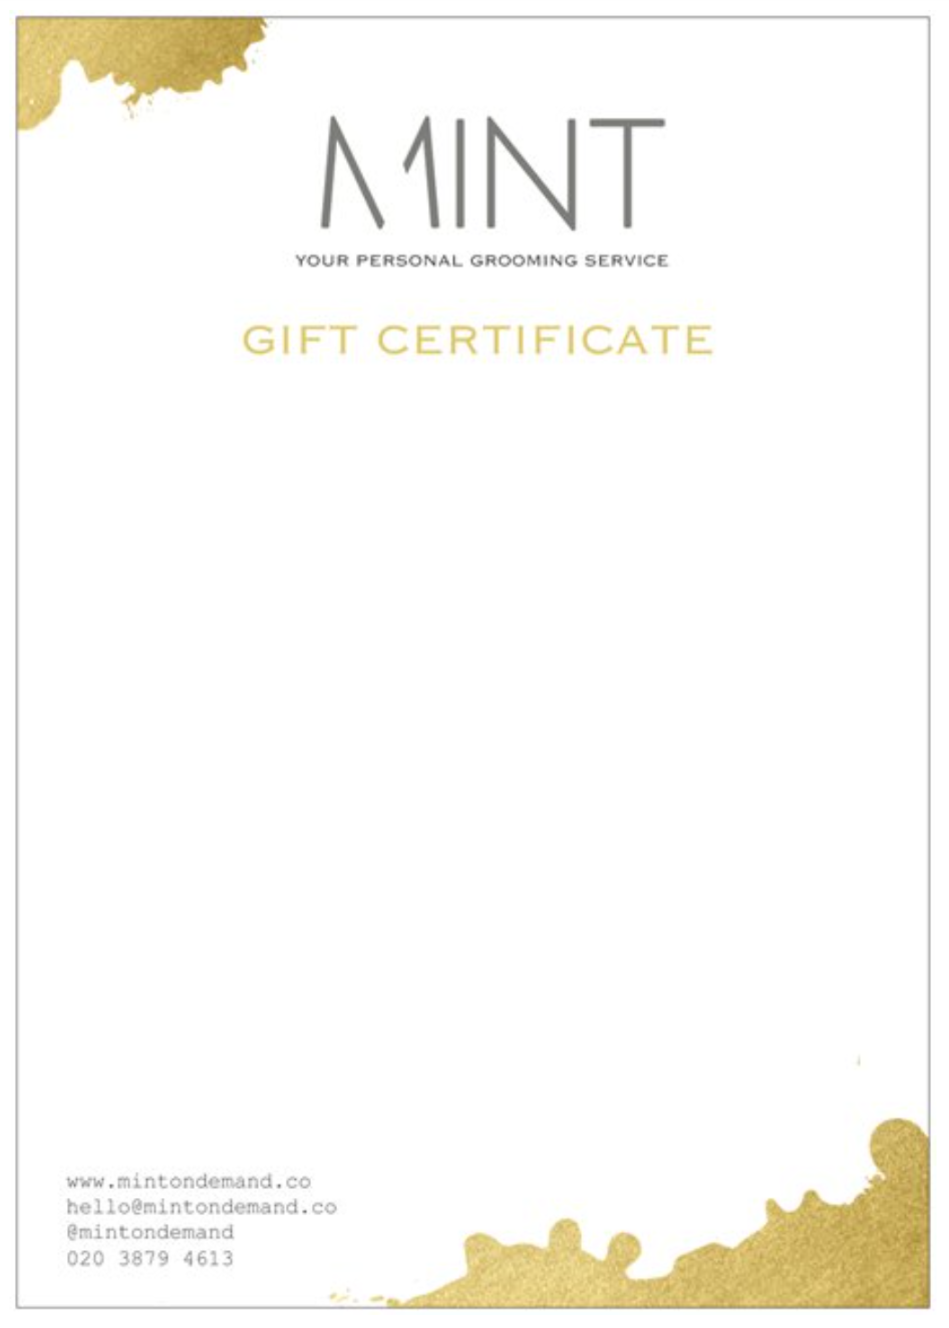 MINT Gift Certificates